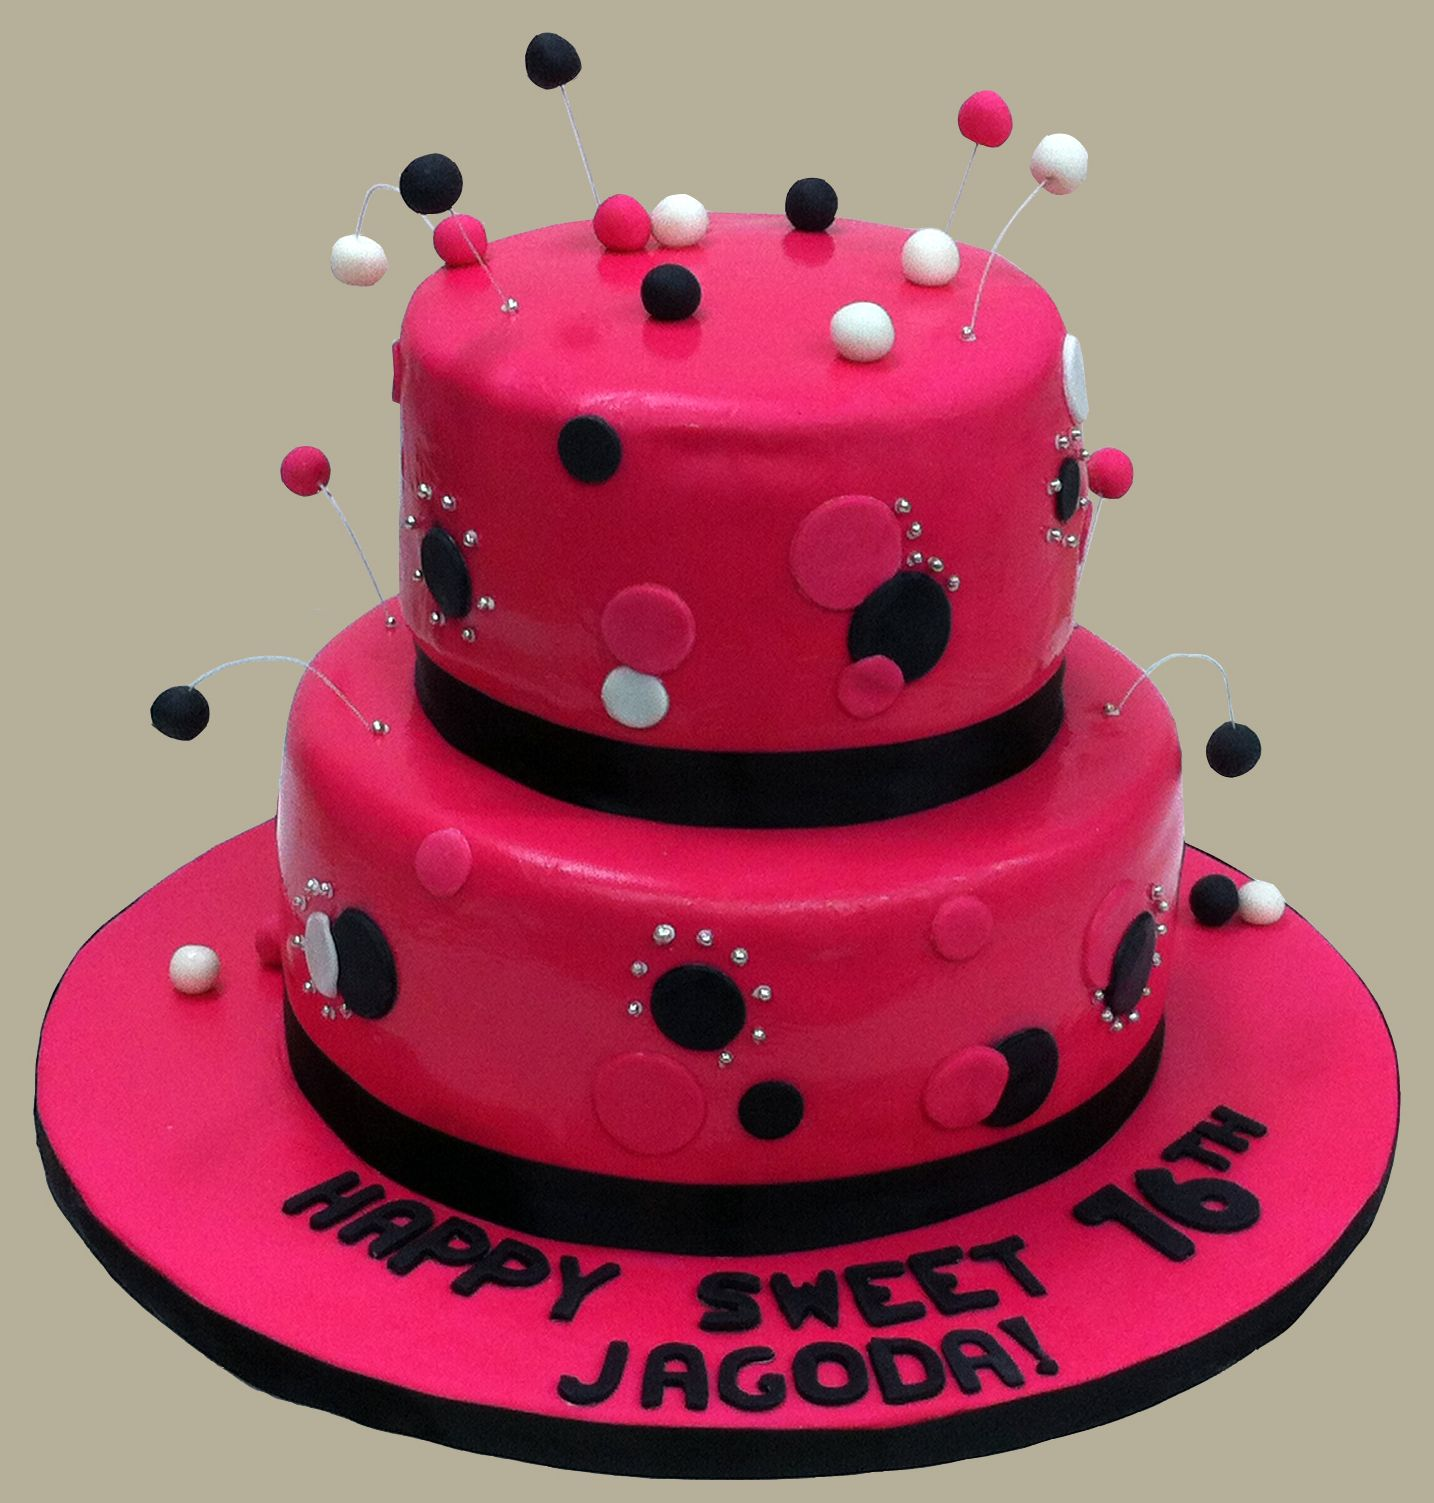 Outstanding Luxurious Birthday Cakes With Images Walmart Bakery Birthday Personalised Birthday Cards Cominlily Jamesorg